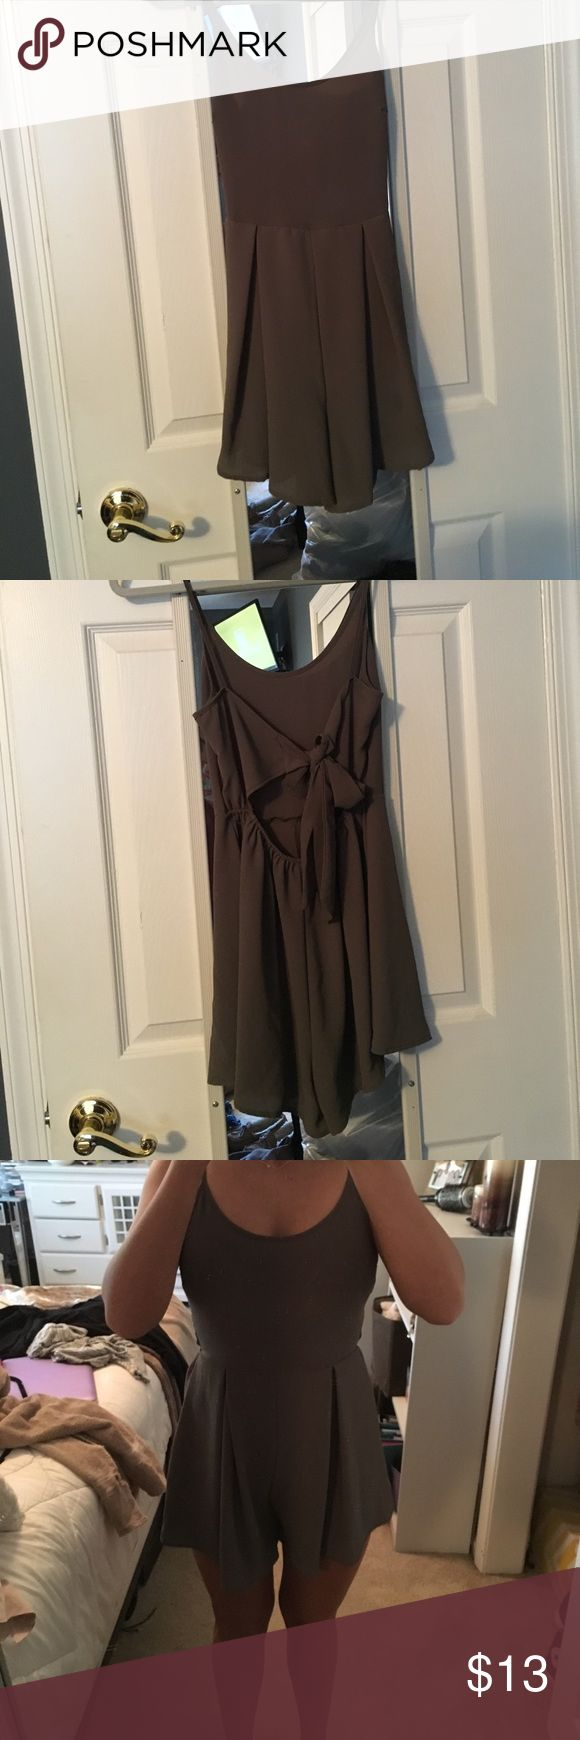 Green open back romper Charlotte Ruse XS army green romper. Open back with tie. Worn once. Charlotte Russe Dresses